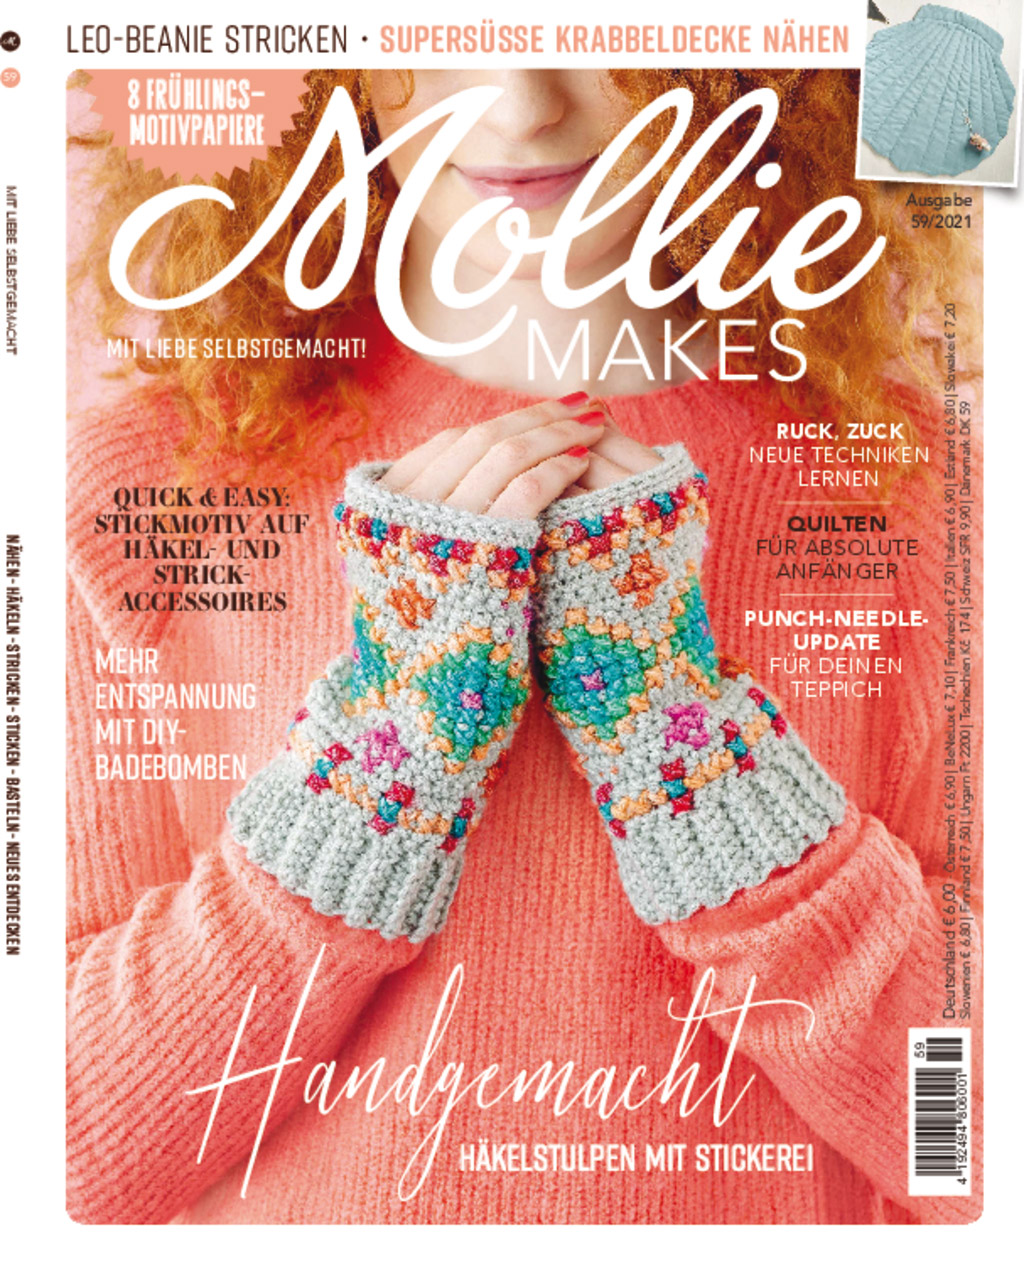 Mollie Makes Nr. 59/2021 - Handgemacht